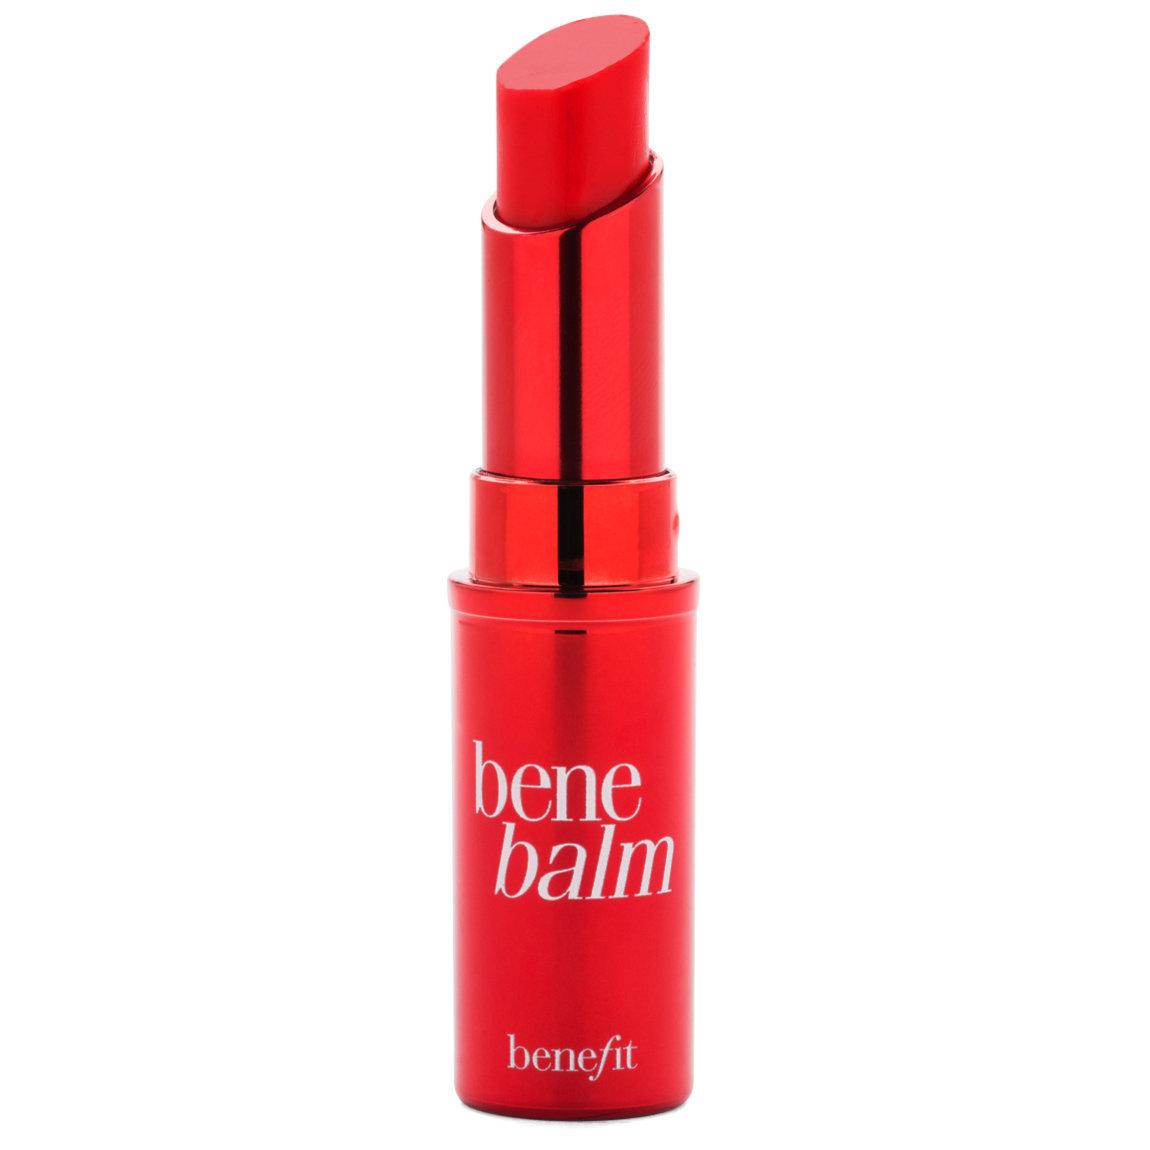 Benefit Cosmetics Benebalm Hydrating Tinted Lip Balm benebalm Hydrating Tinted Lip Balm product smear.